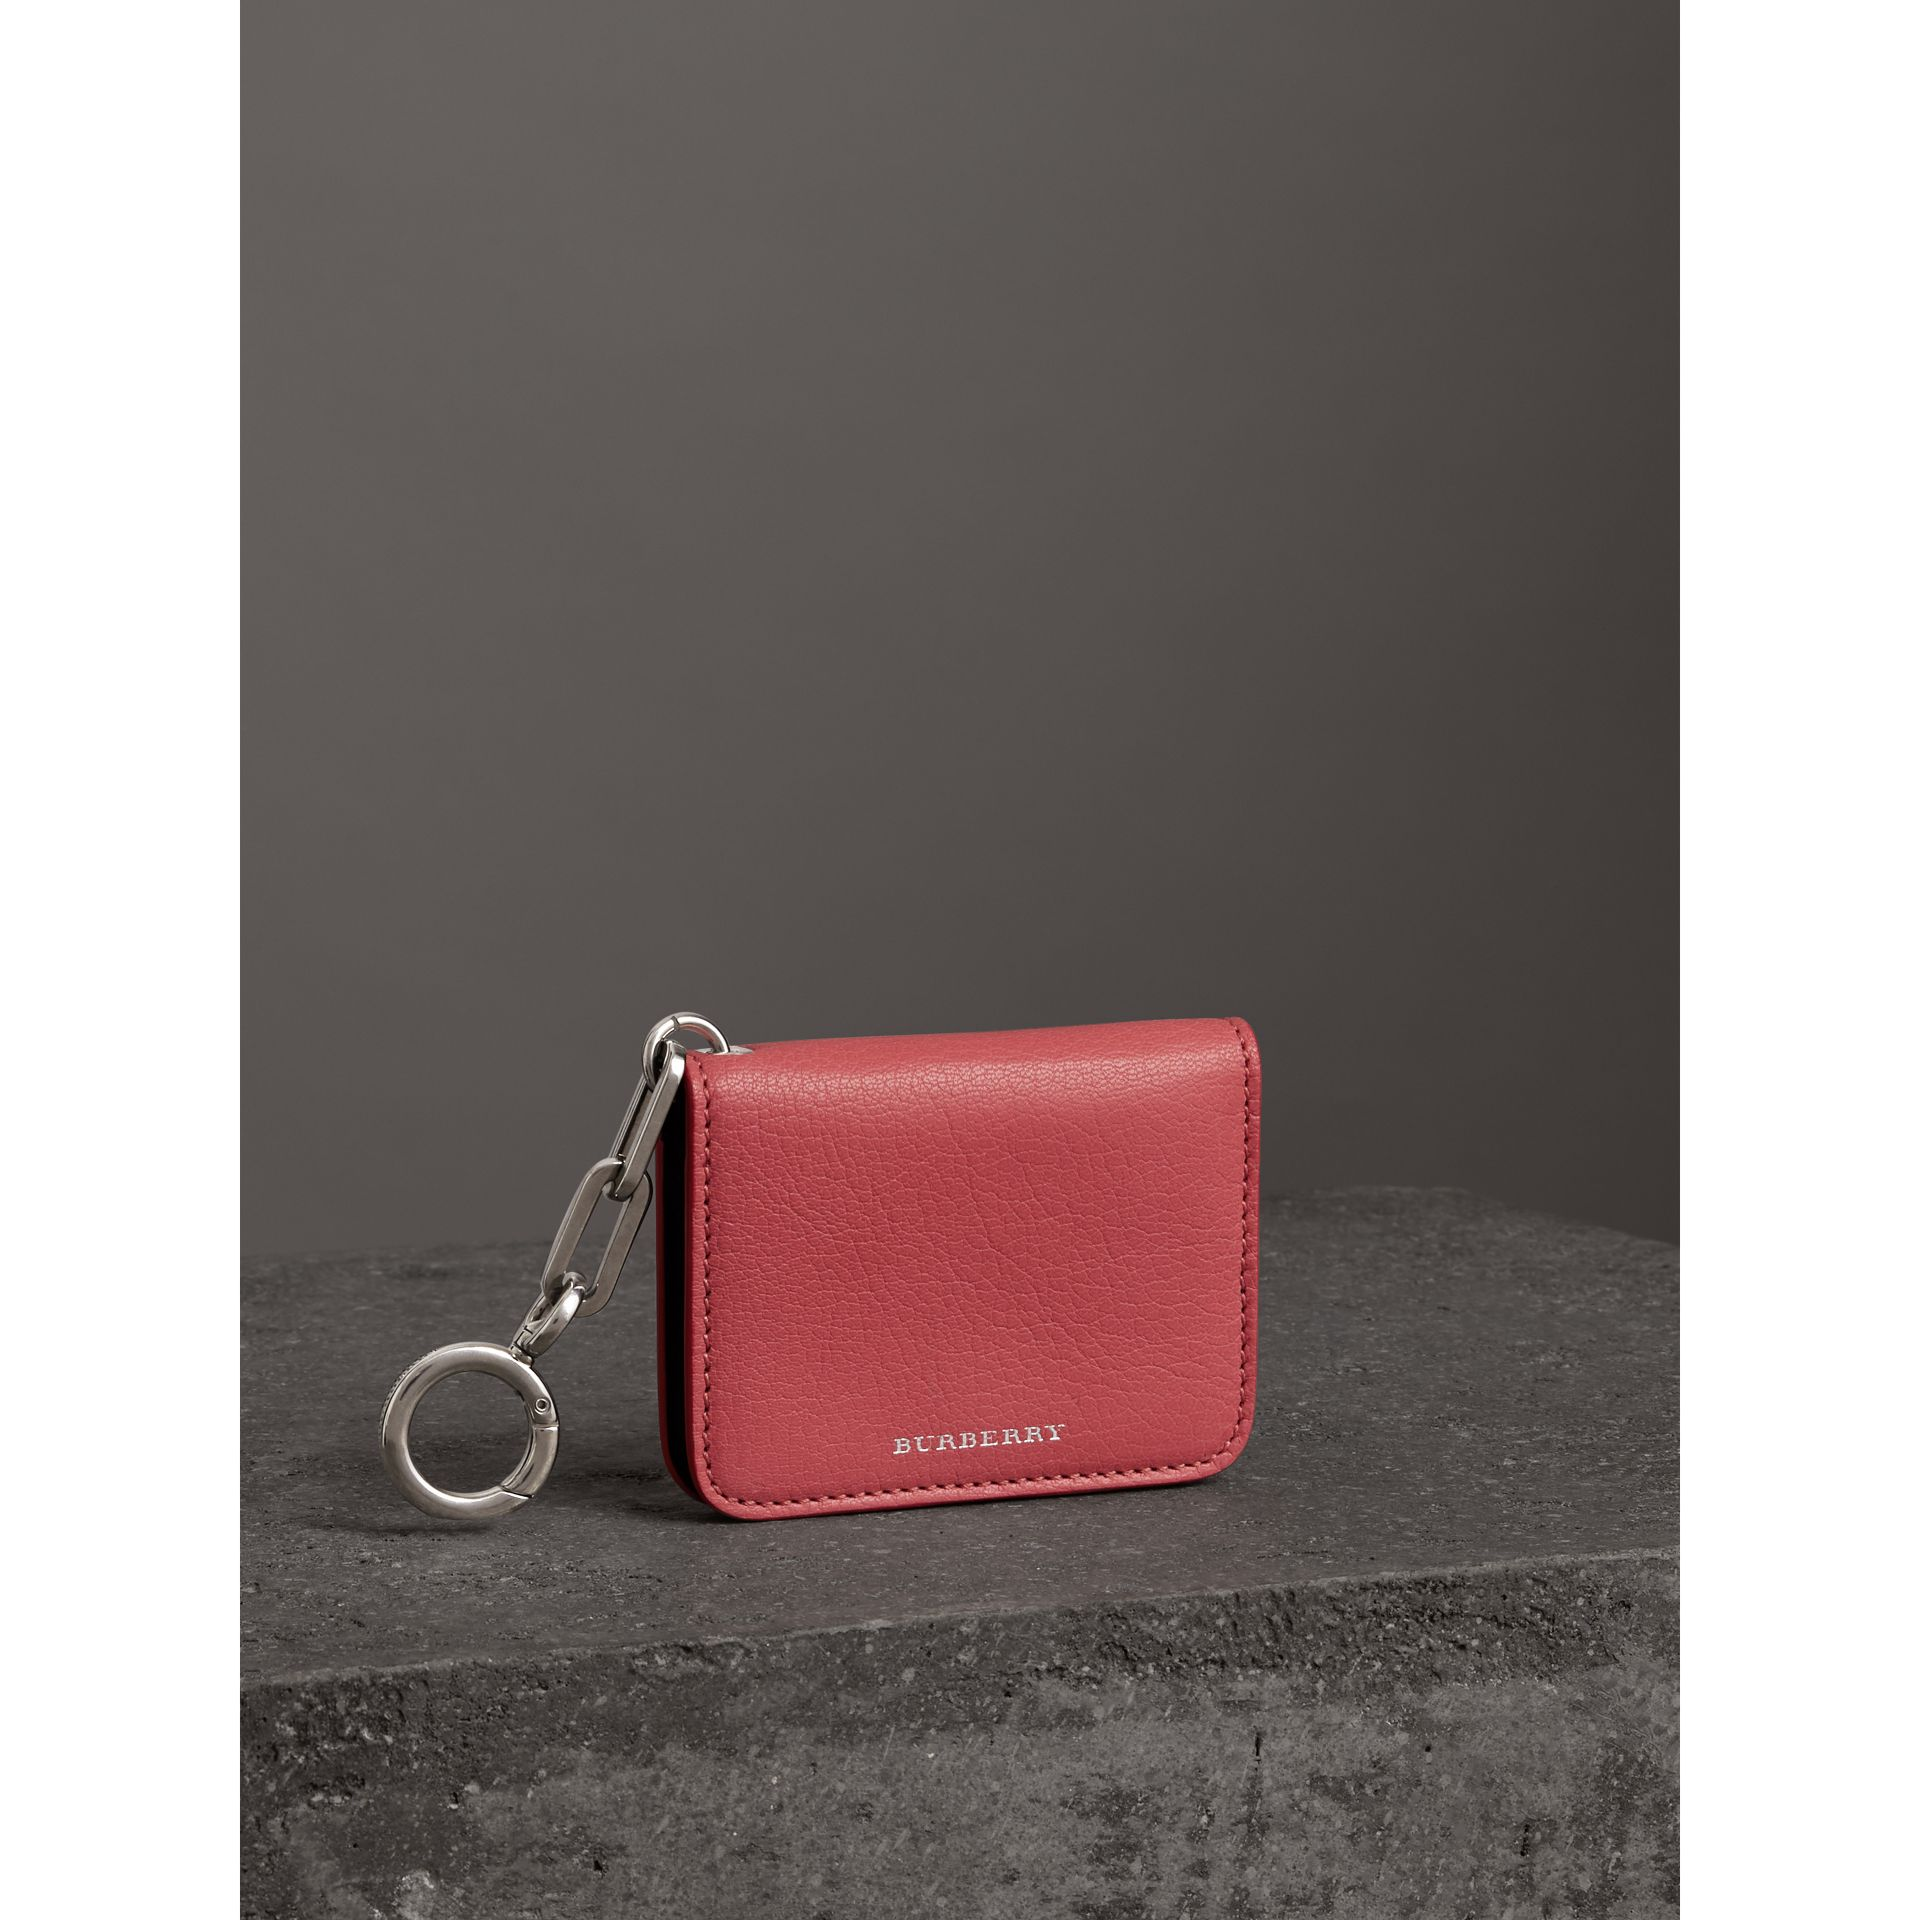 Link Detail Leather ID Card Case Charm in Bright Coral Pink - Women | Burberry - gallery image 5